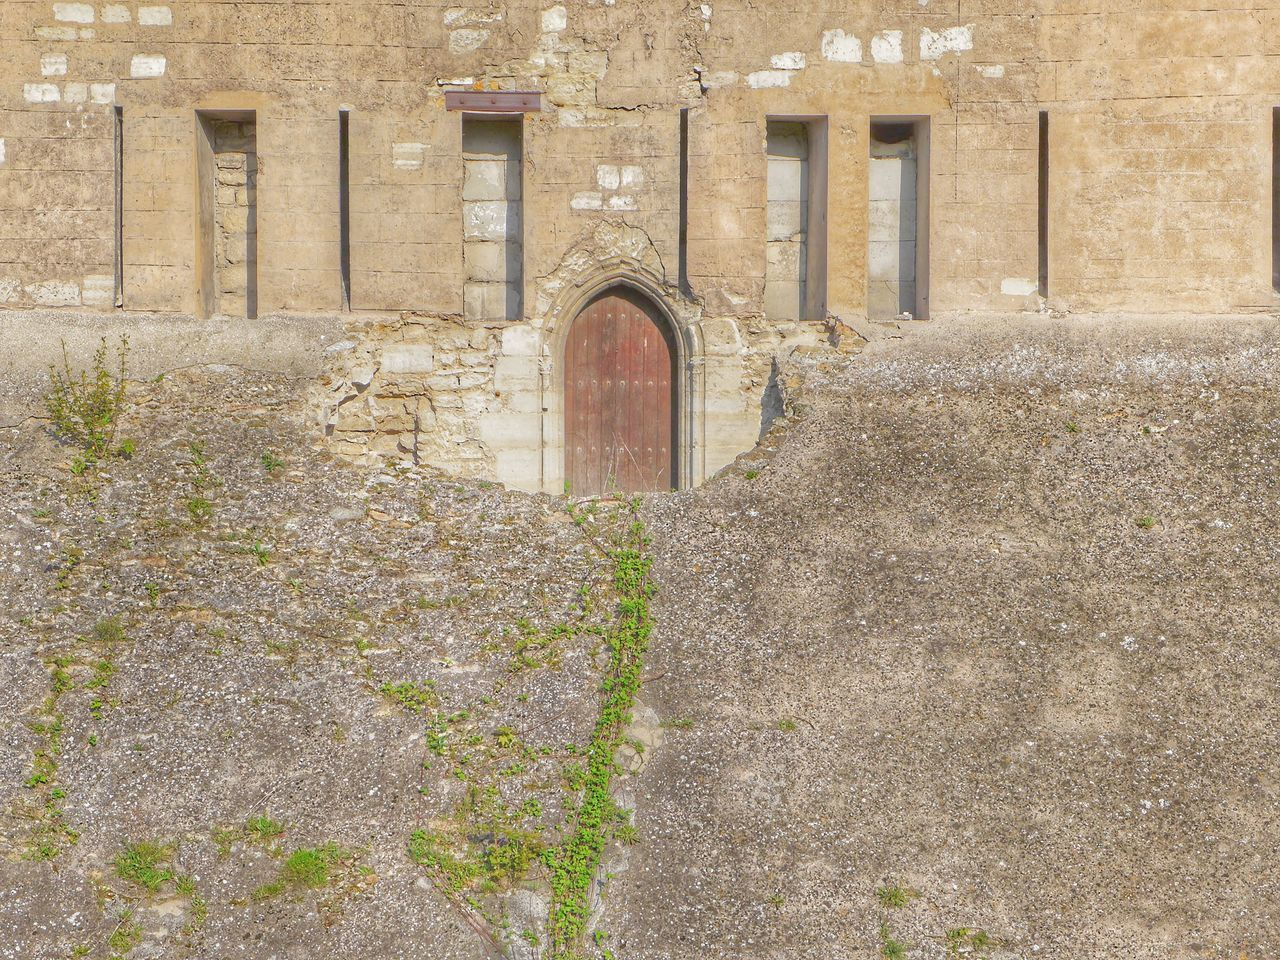 architecture, built structure, arch, building exterior, day, building, no people, the past, wall, history, old, outdoors, plant, entrance, nature, wall - building feature, window, door, staircase, growth, stone wall, concrete, arched